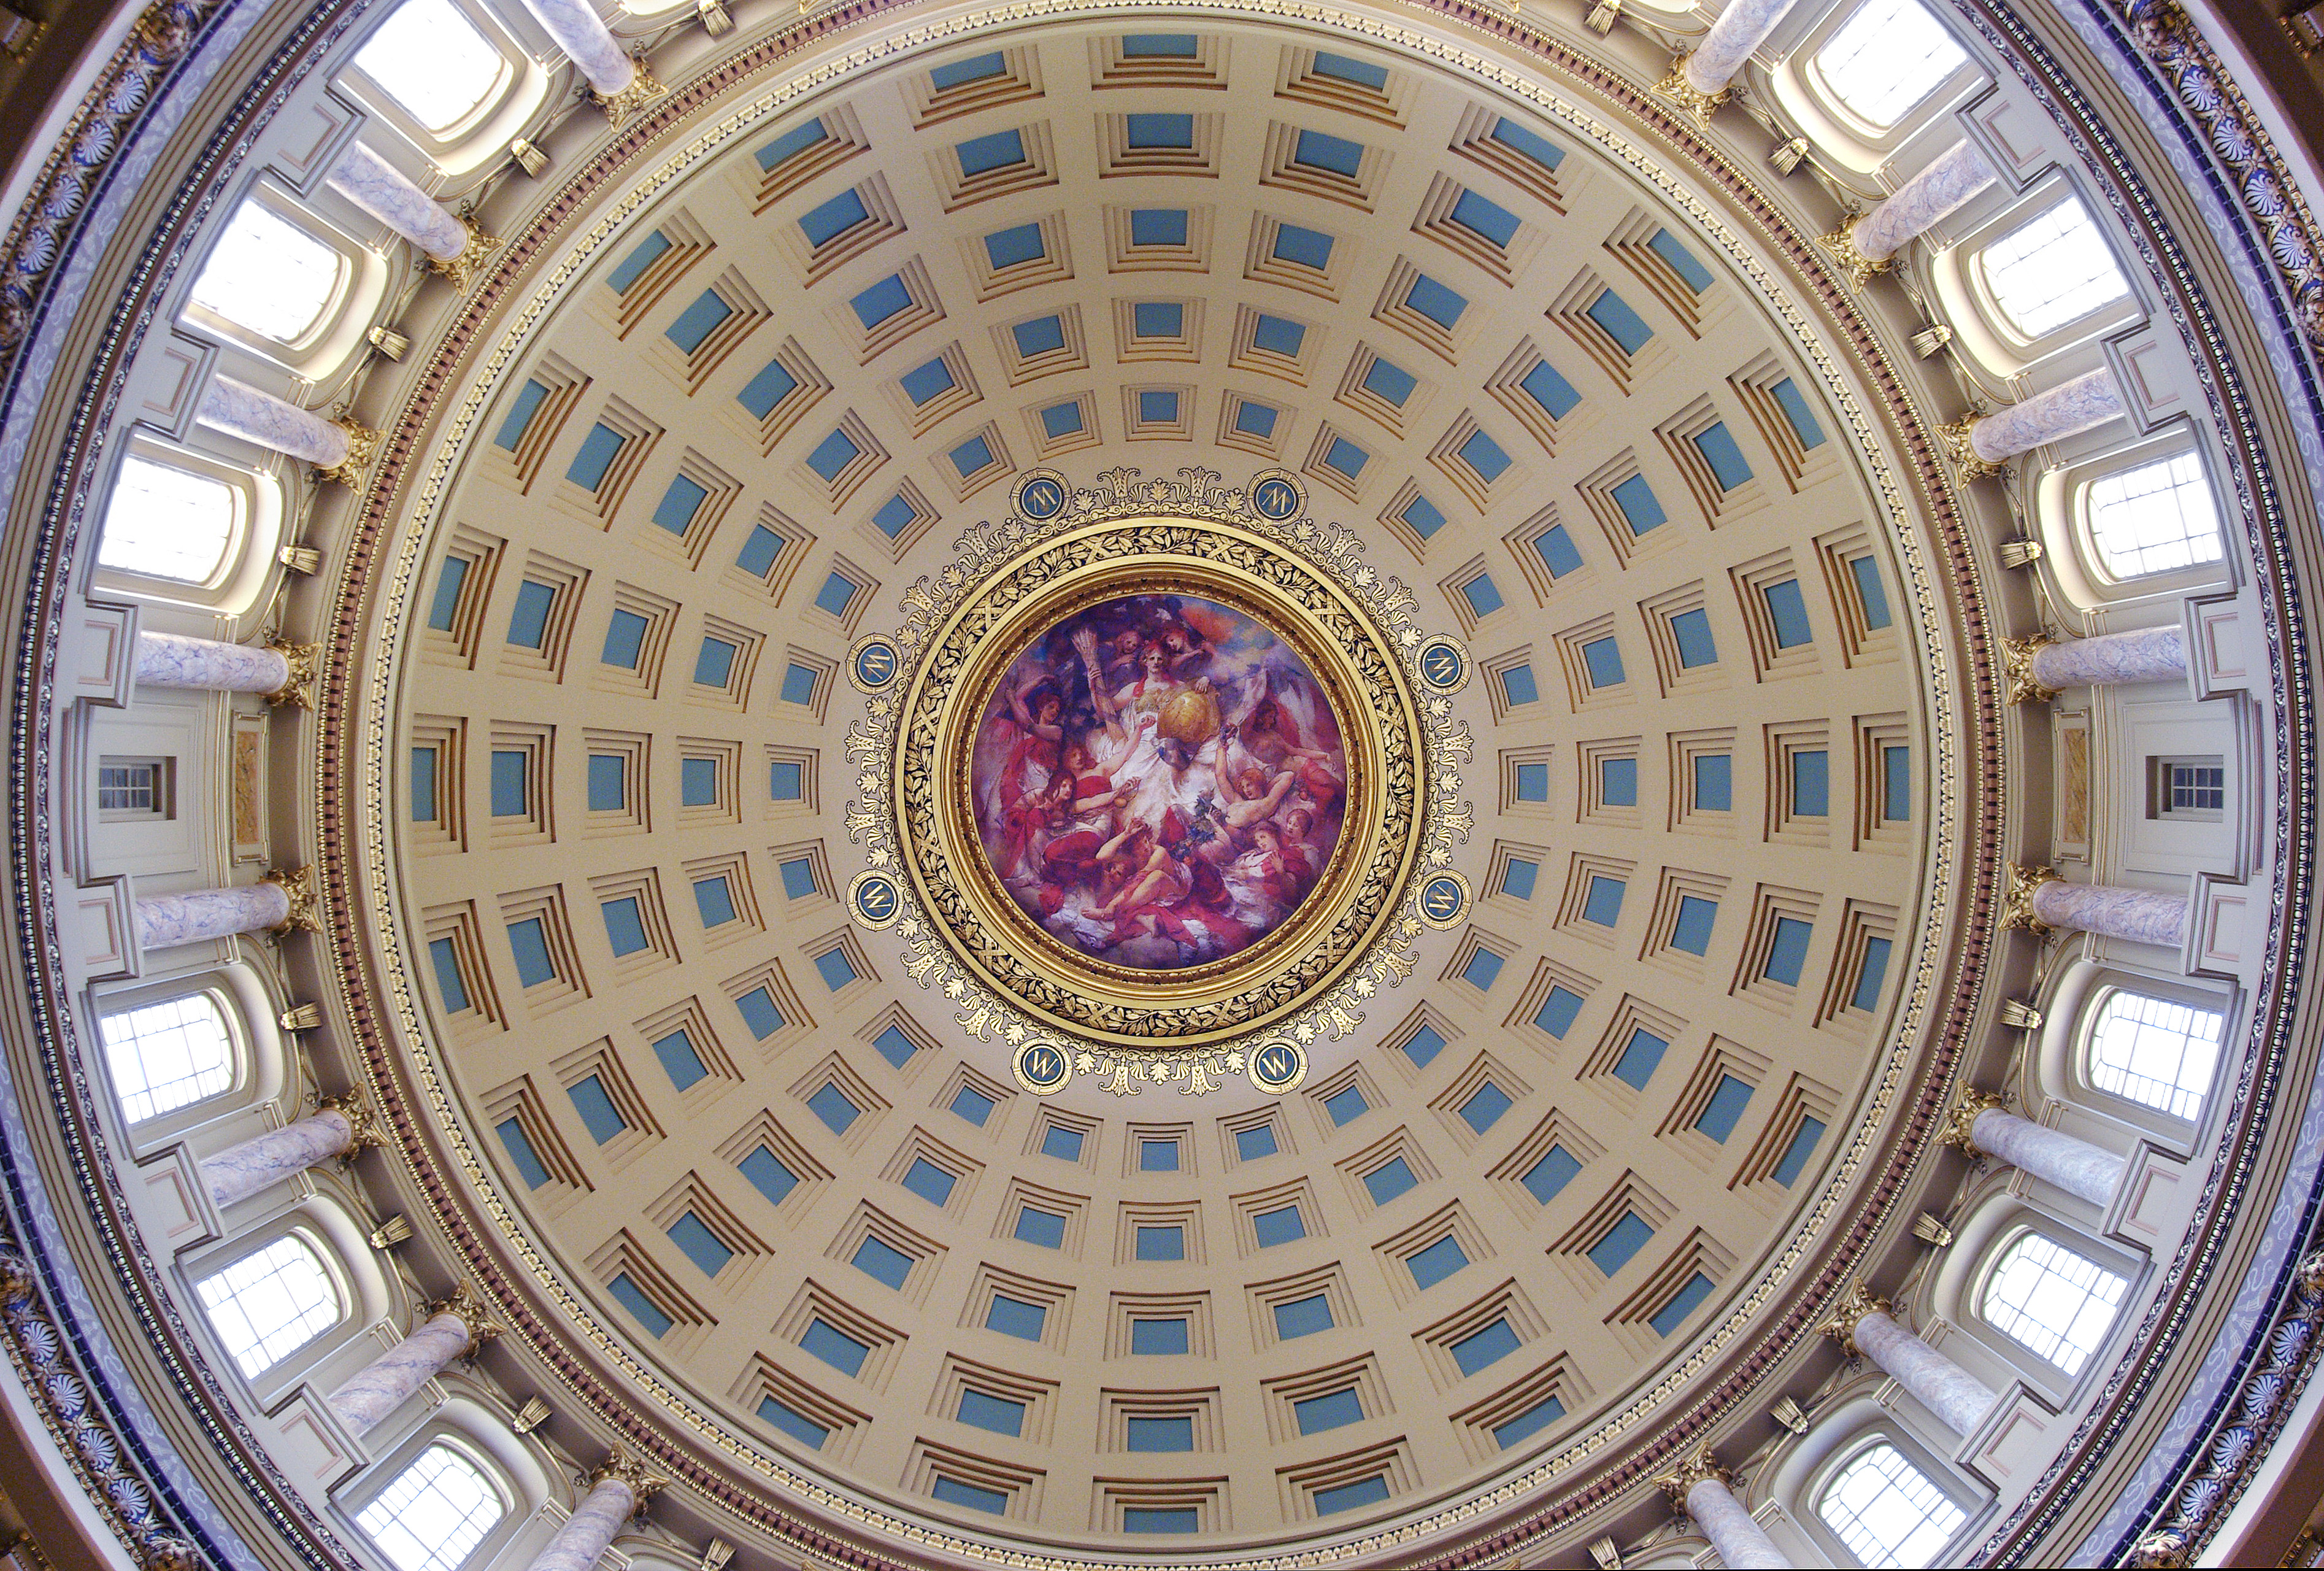 View of the painting under the Wisconsin State Capitols painted dome